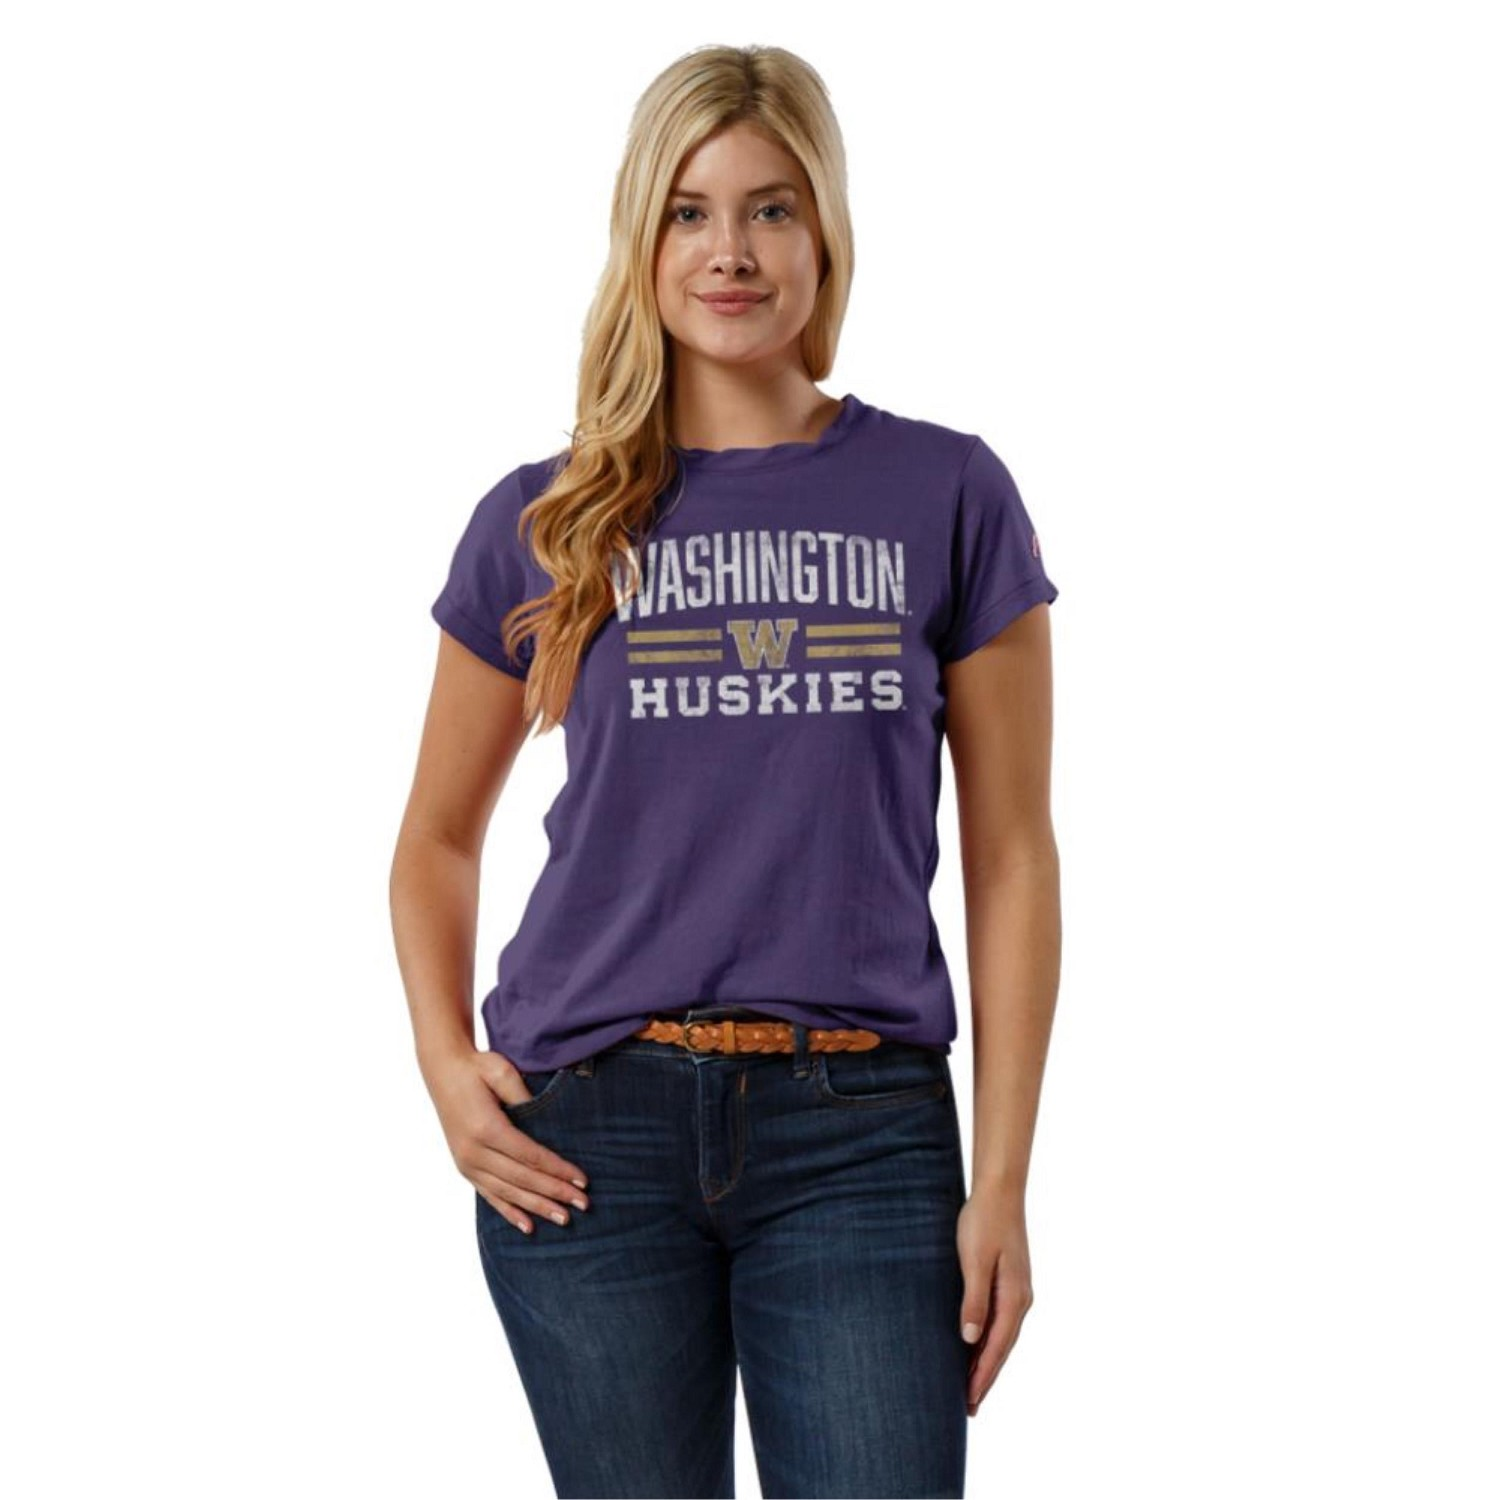 Washington Huskies  Women's Respin T-Shirt